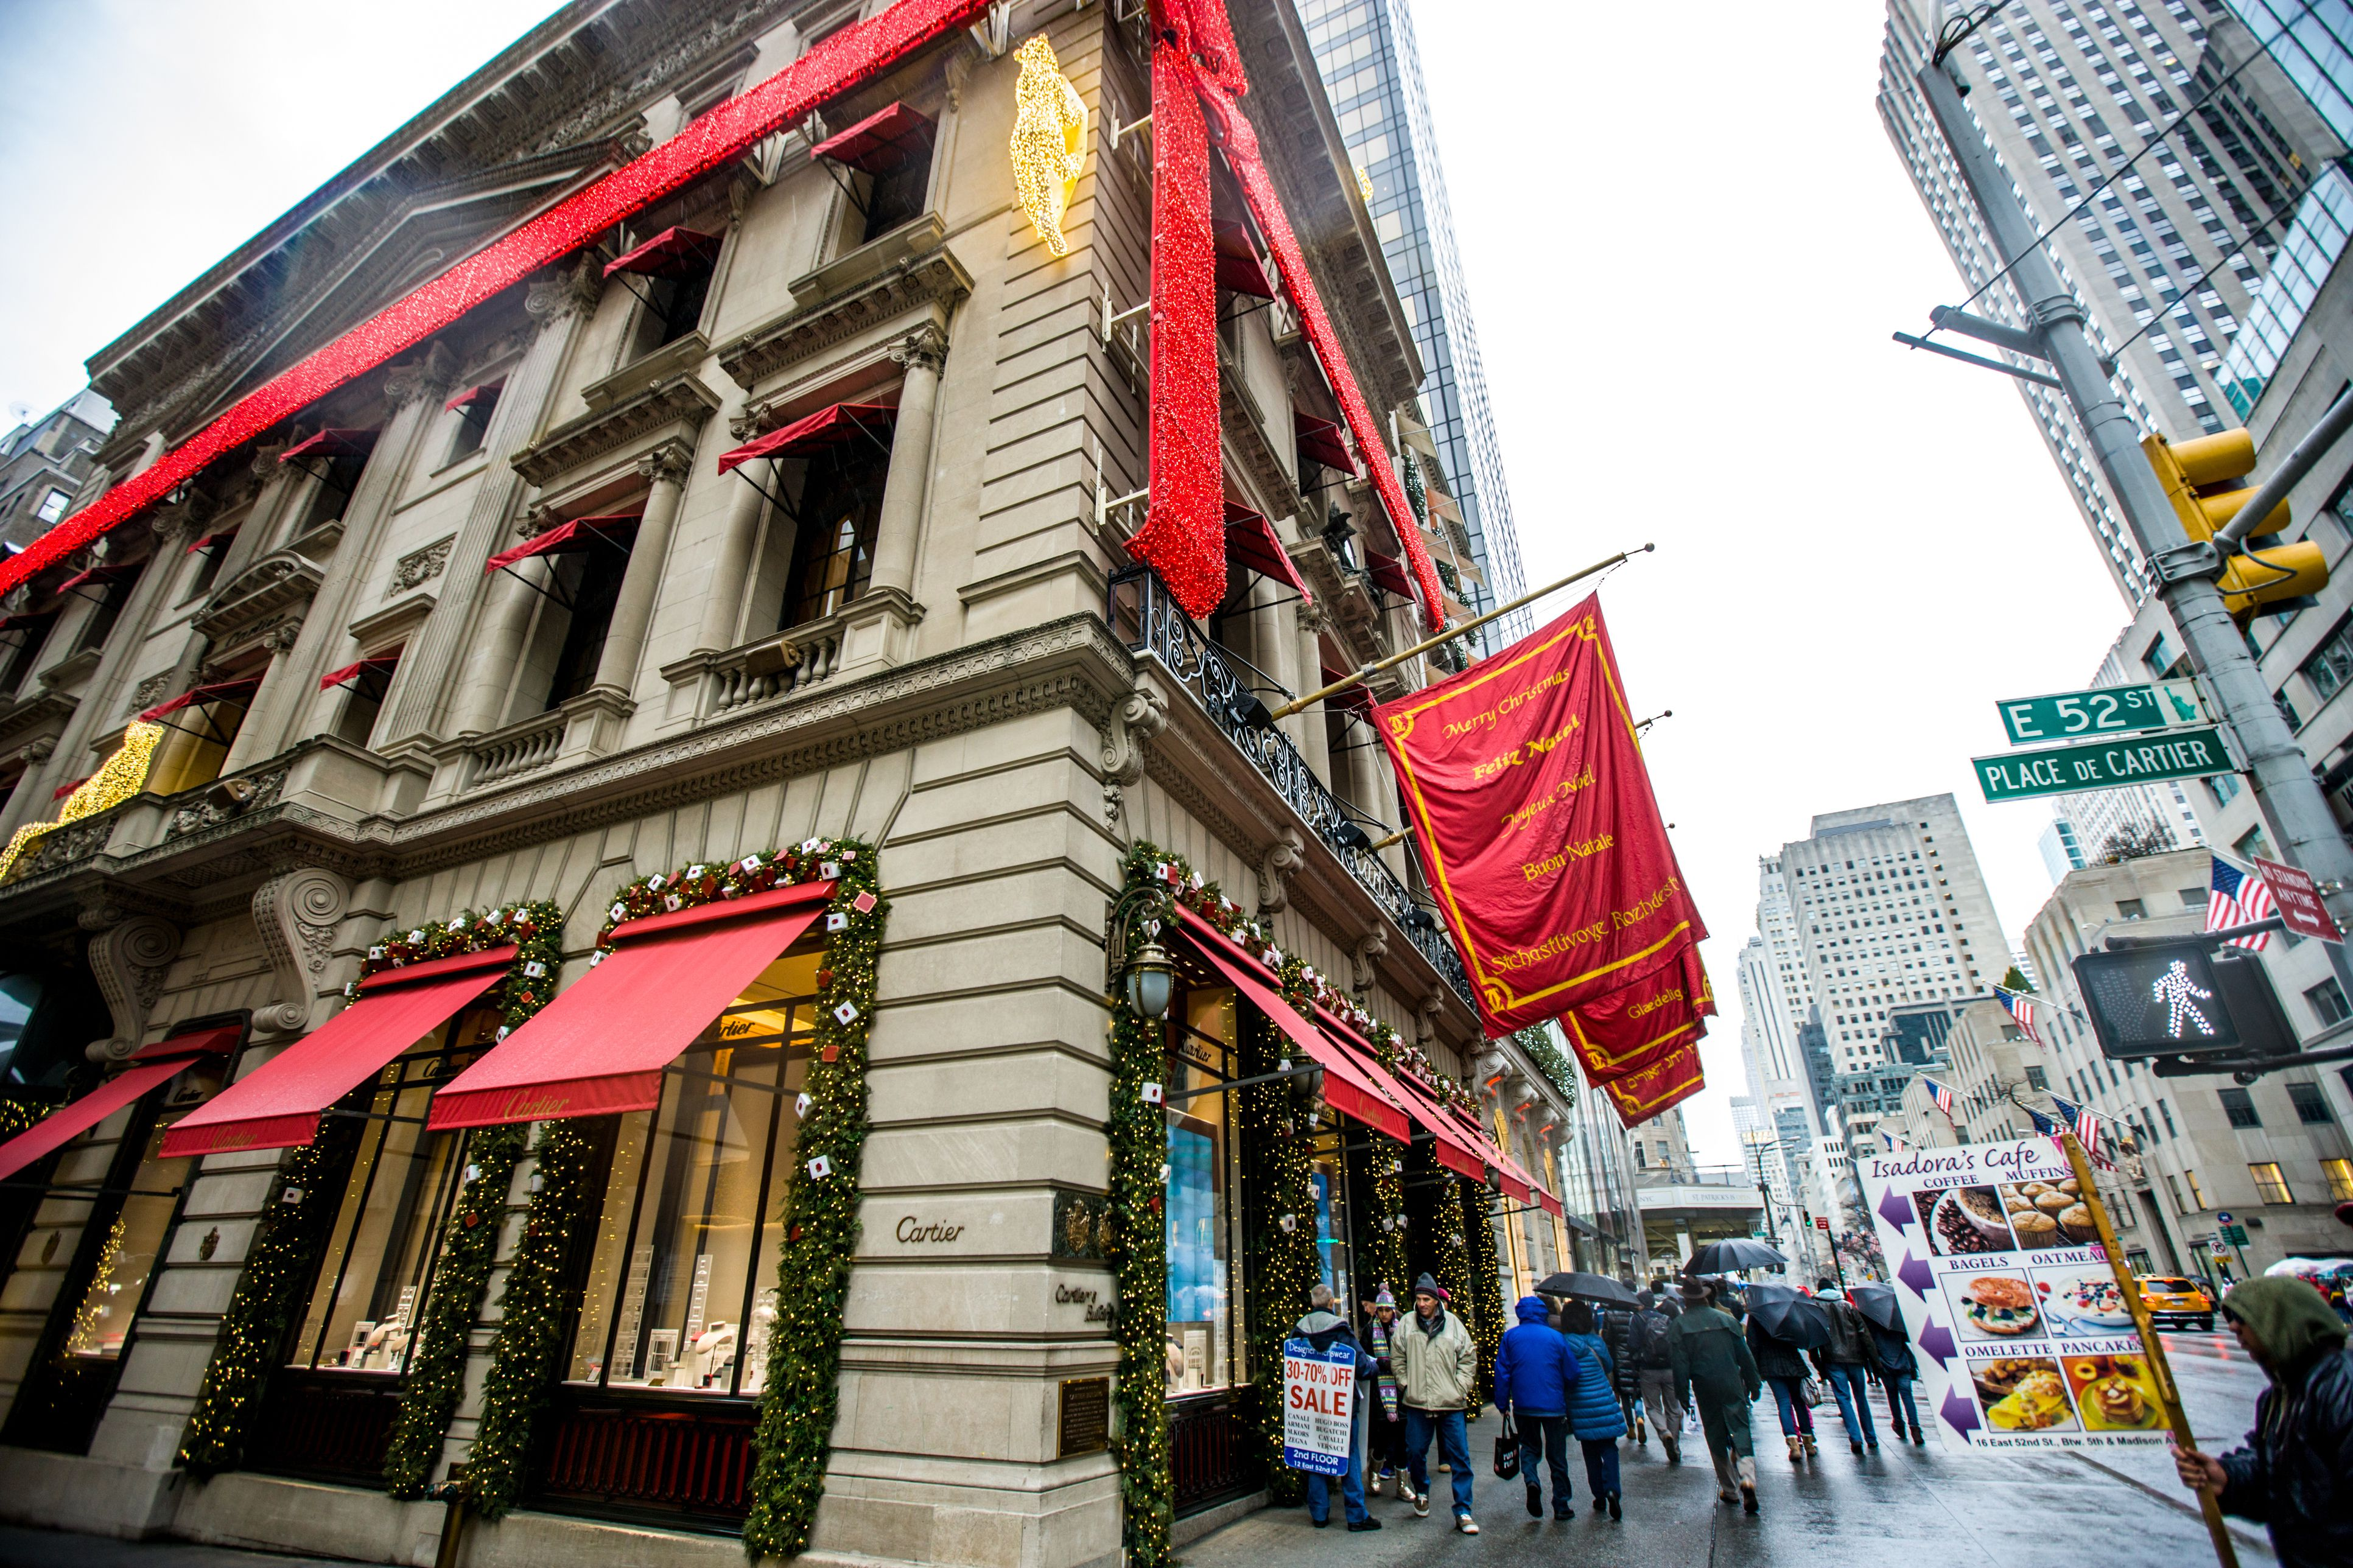 Cartier Store decorated for winter holidays, New York